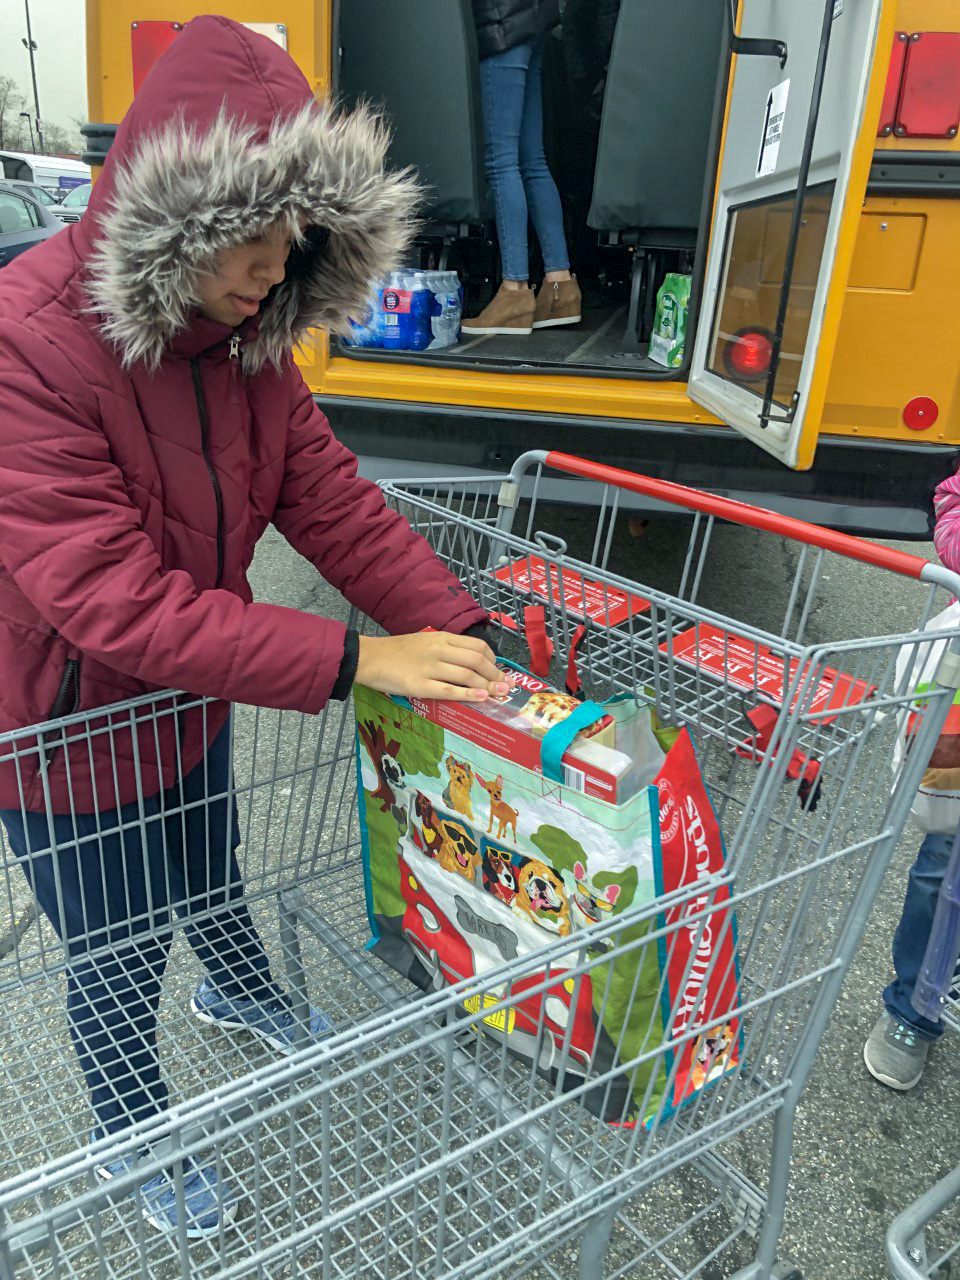 Ivana unloading a cart after shopping